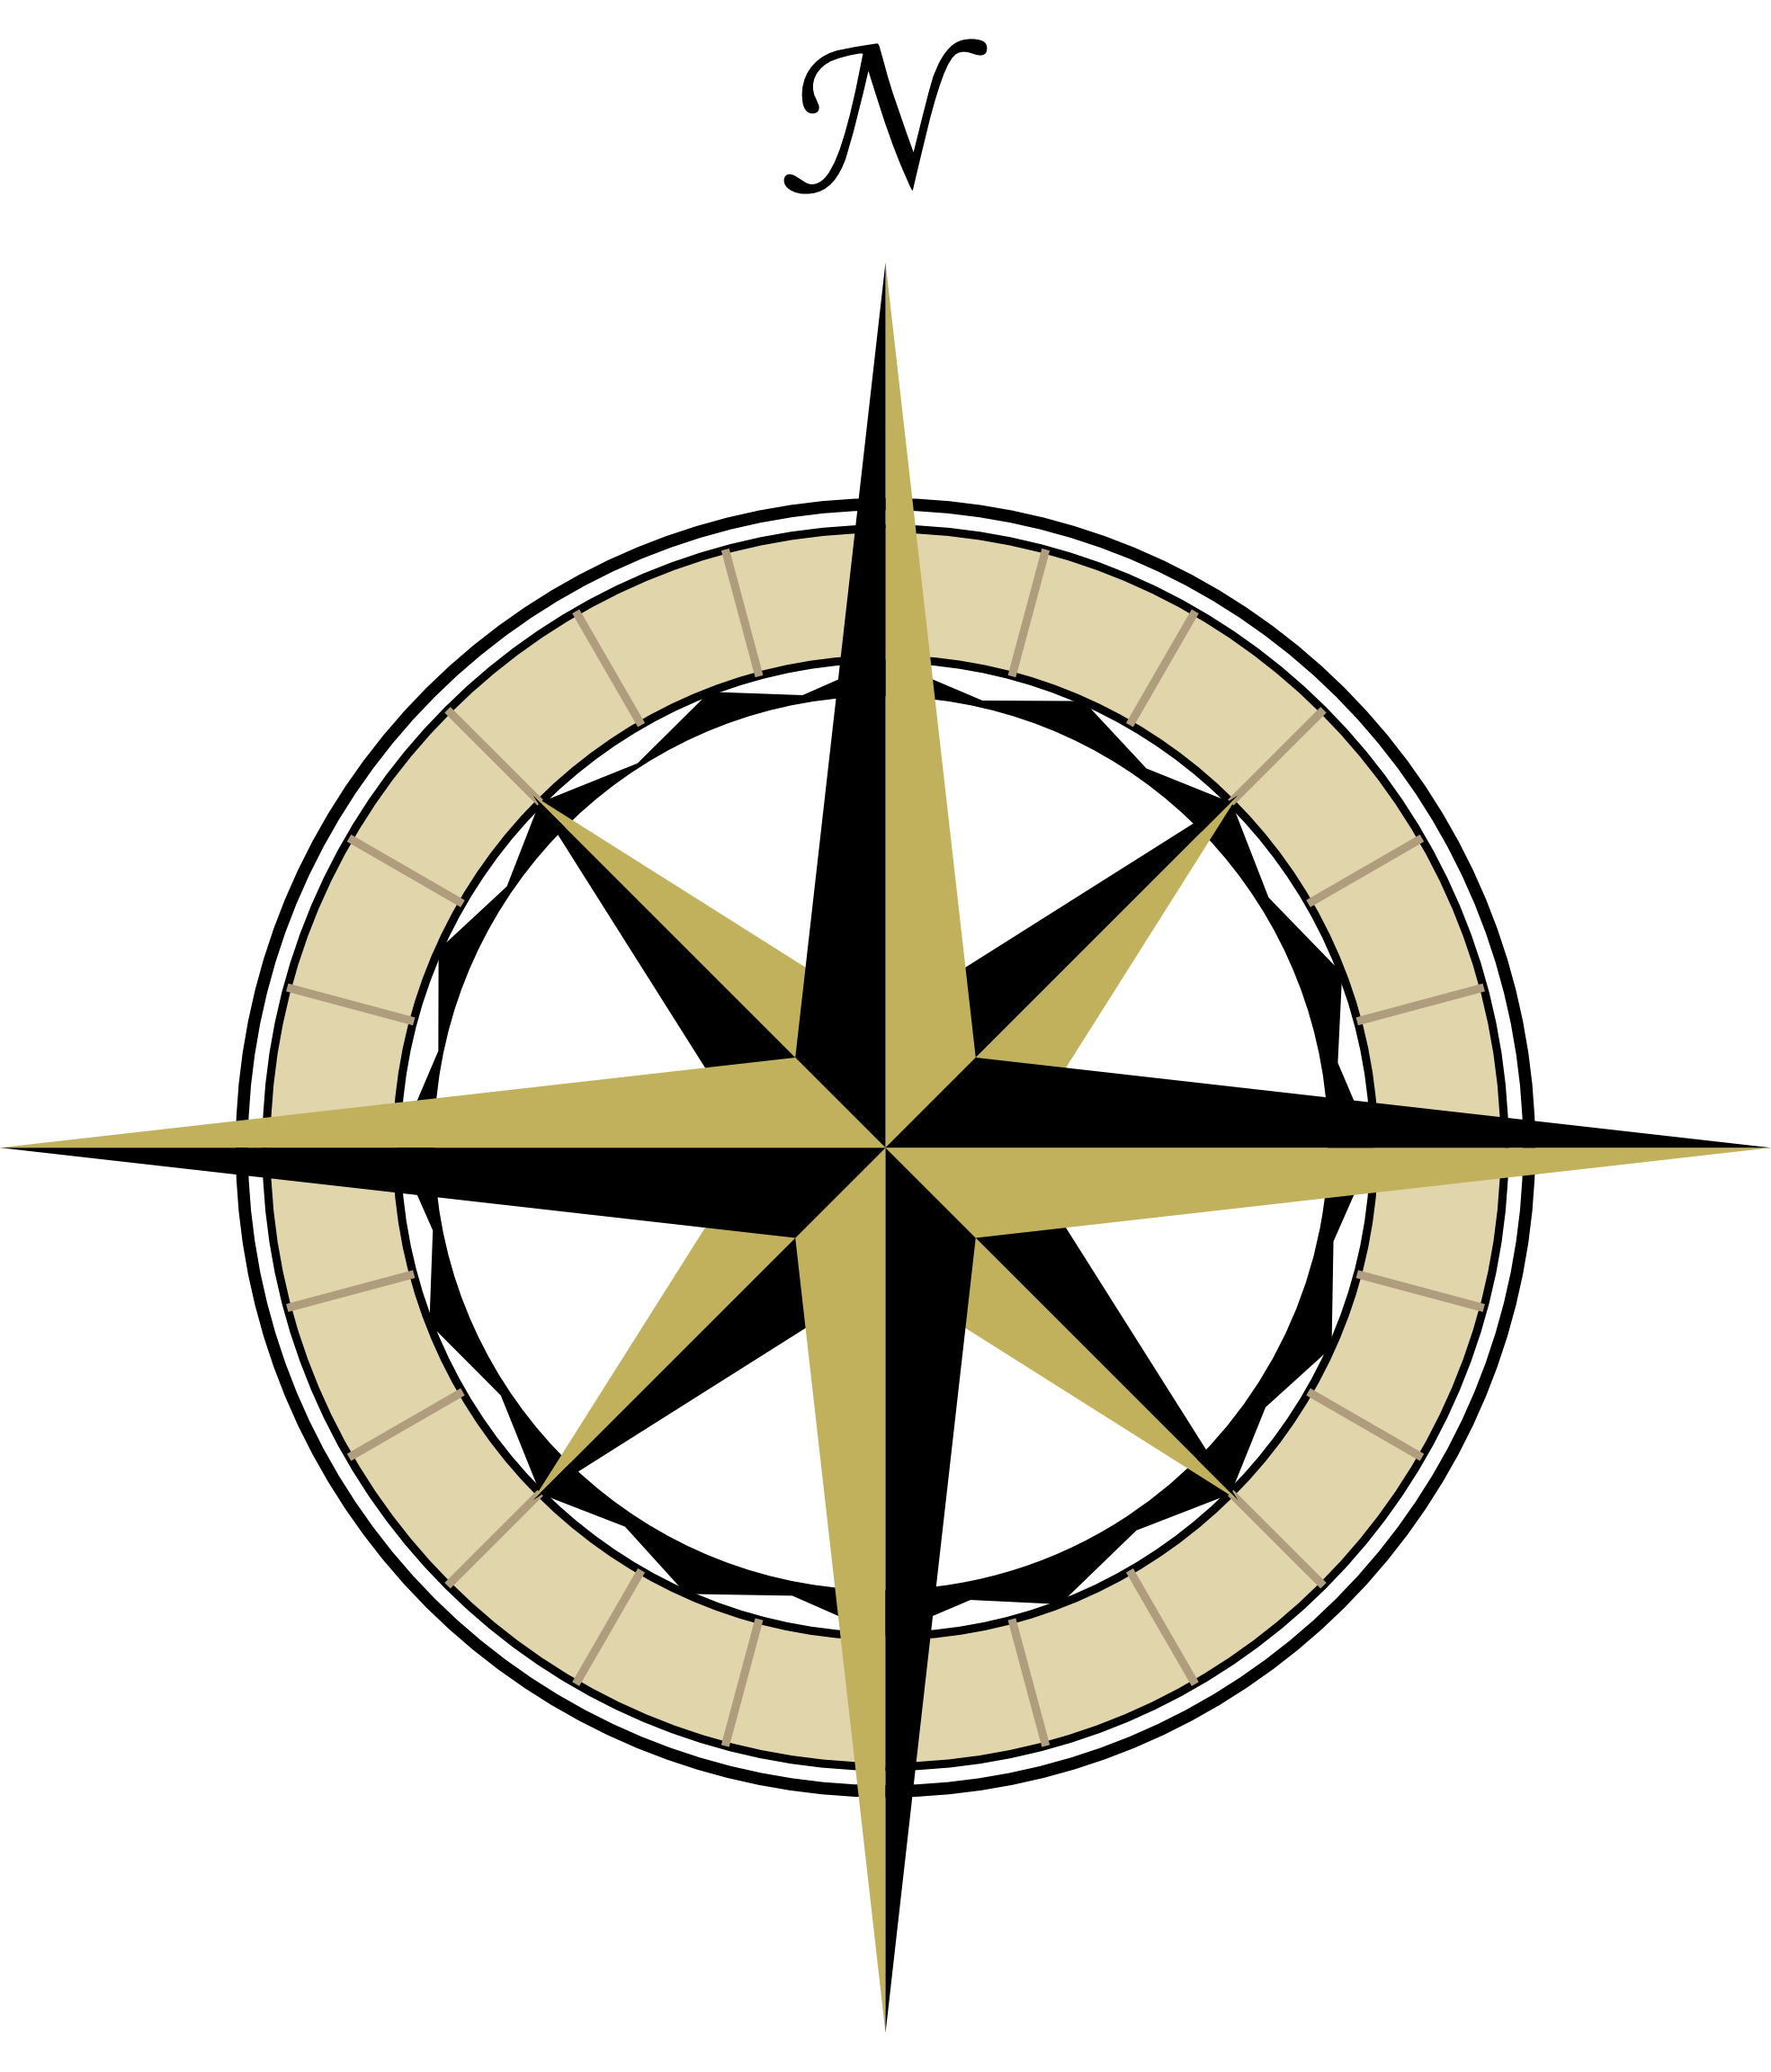 Compass Rose Clip Art - Clipart library